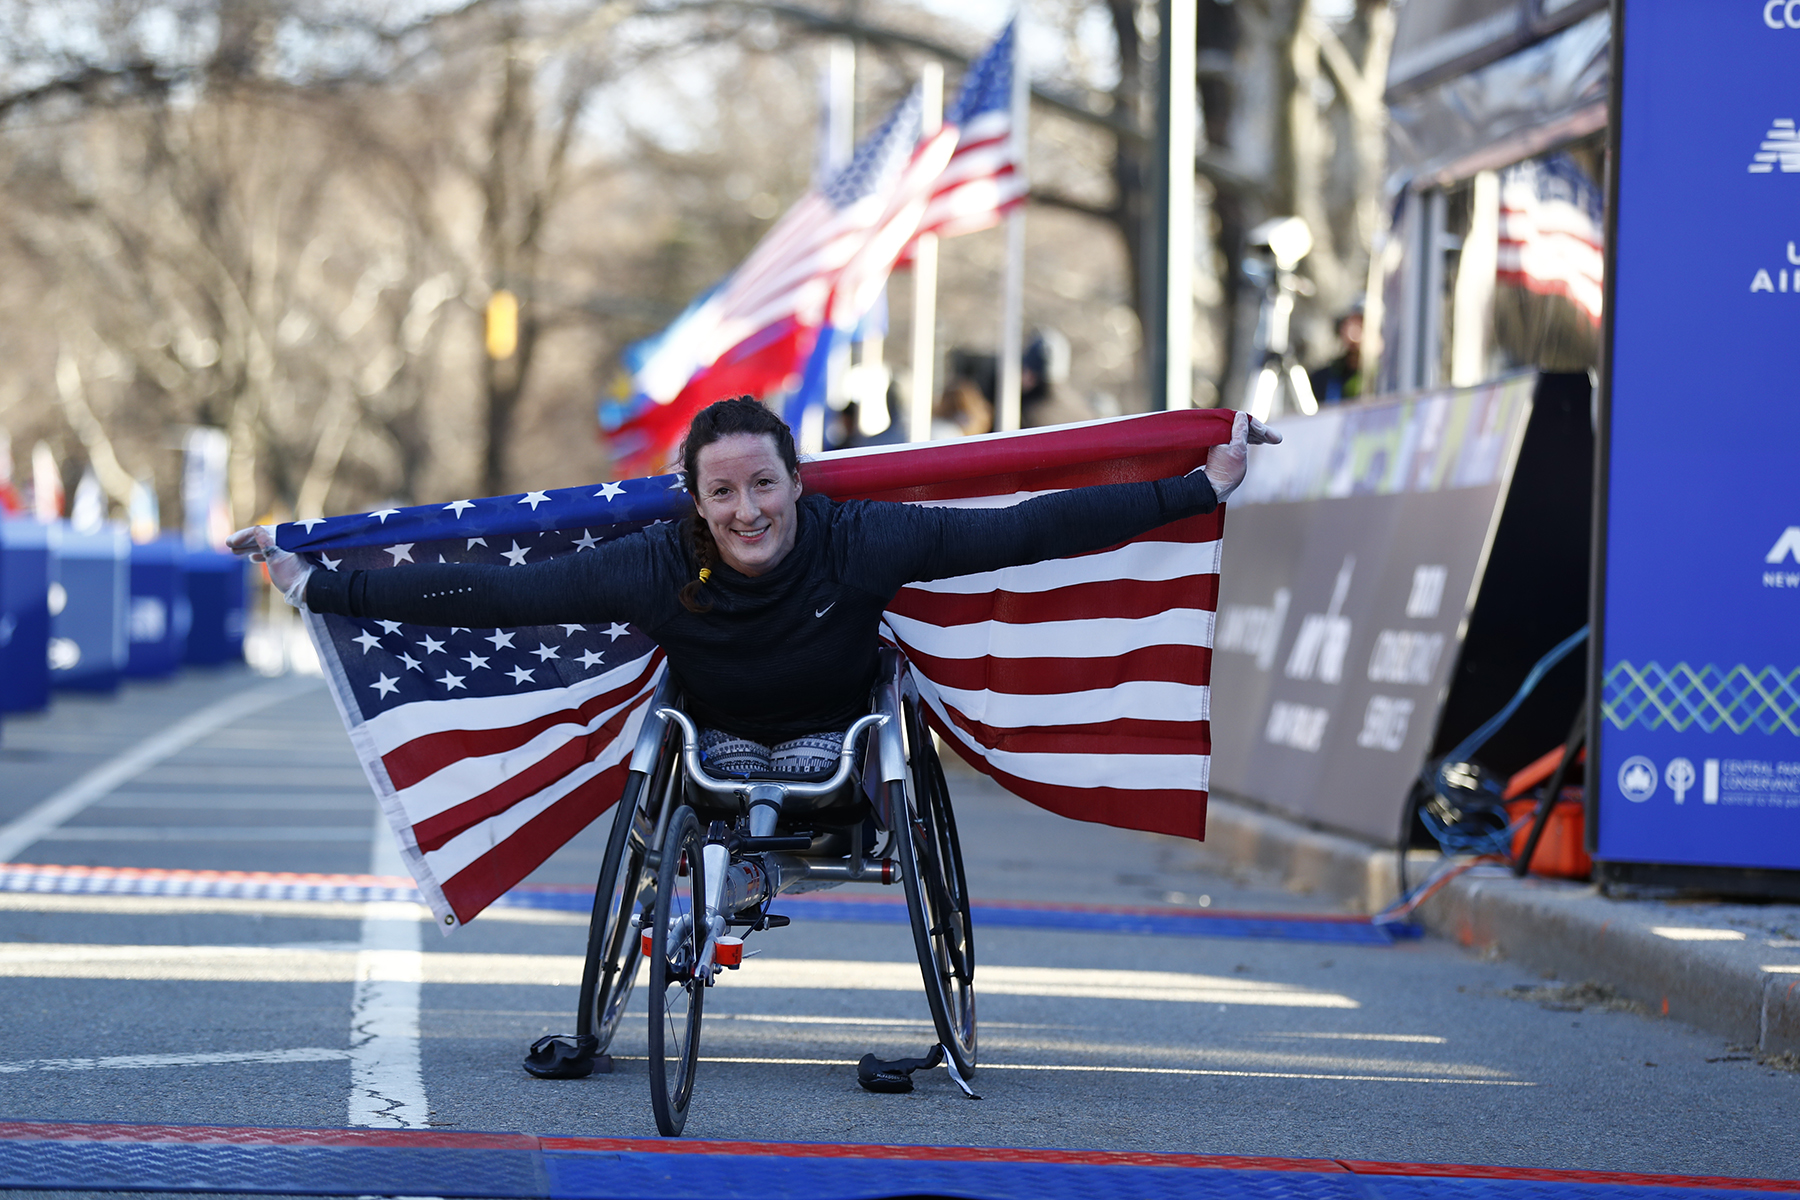 Tatyana McFadden holding the flag of USA after winning the United Airlines NYC Half